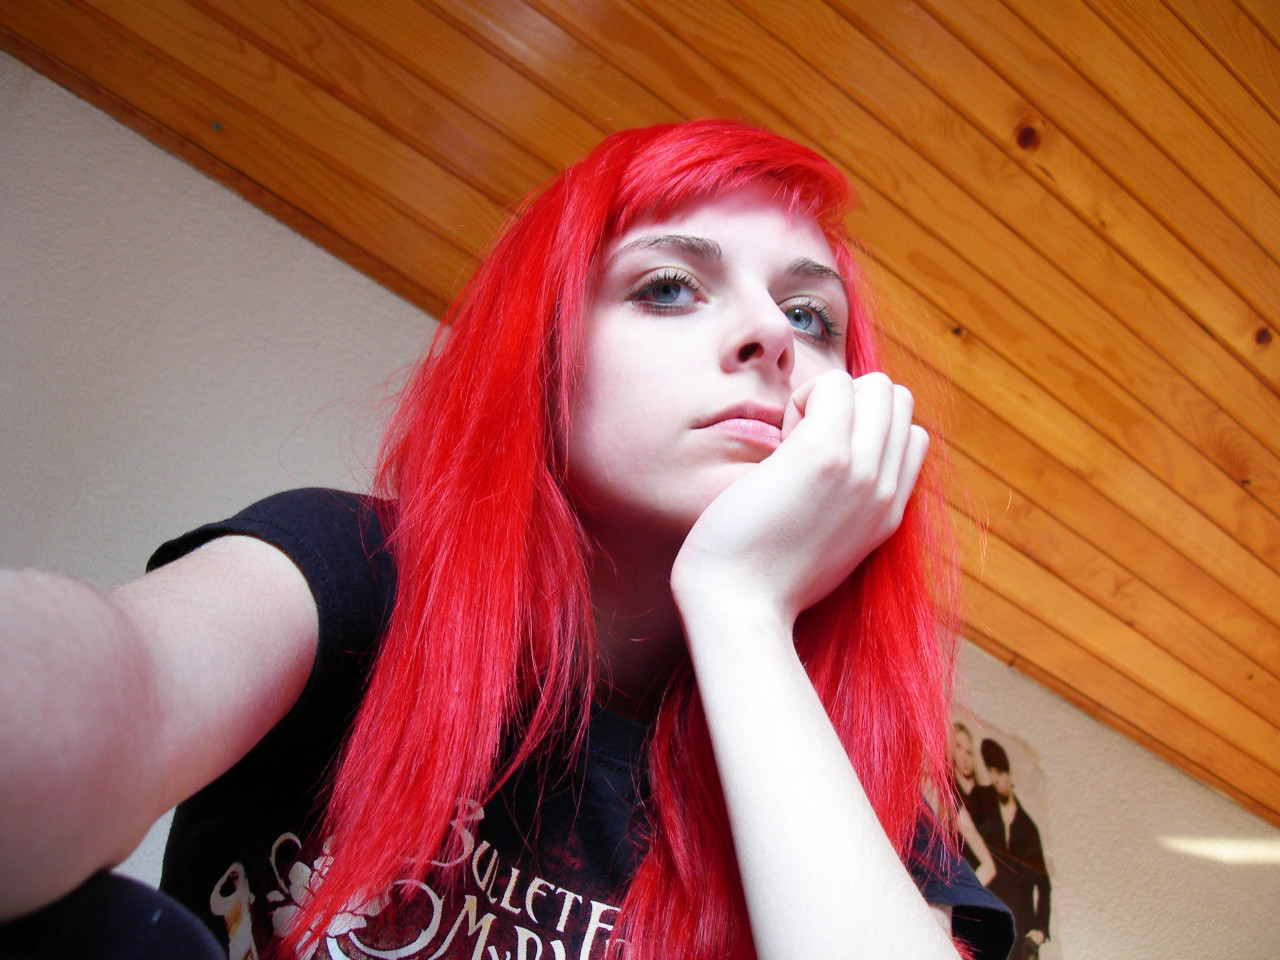 gothic-sanctum:   An old photo. Bored,and no makeup.ugly.. I miss my hair color so much.